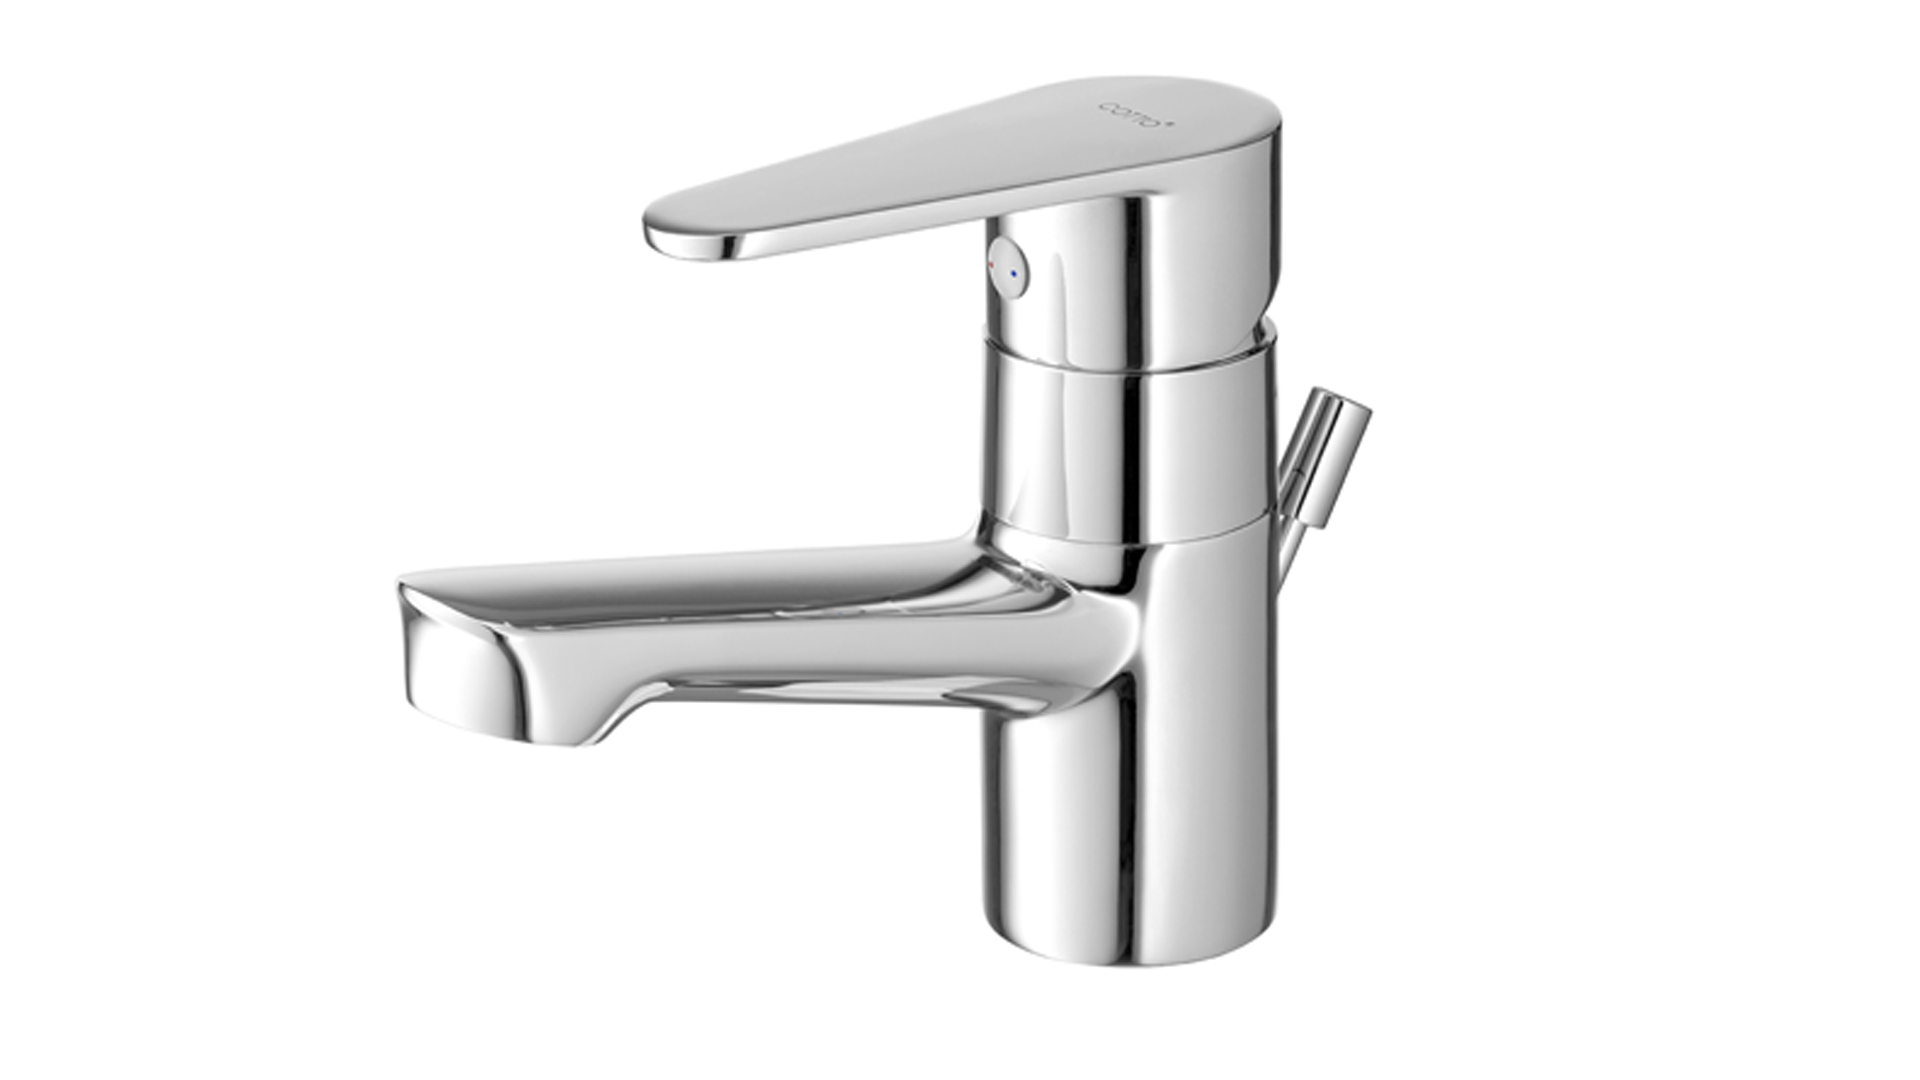 pin out brushed stainless modern hansa spout sprayer gicasa pull monobloc swivel faucets steel kitchen sink taps mixer